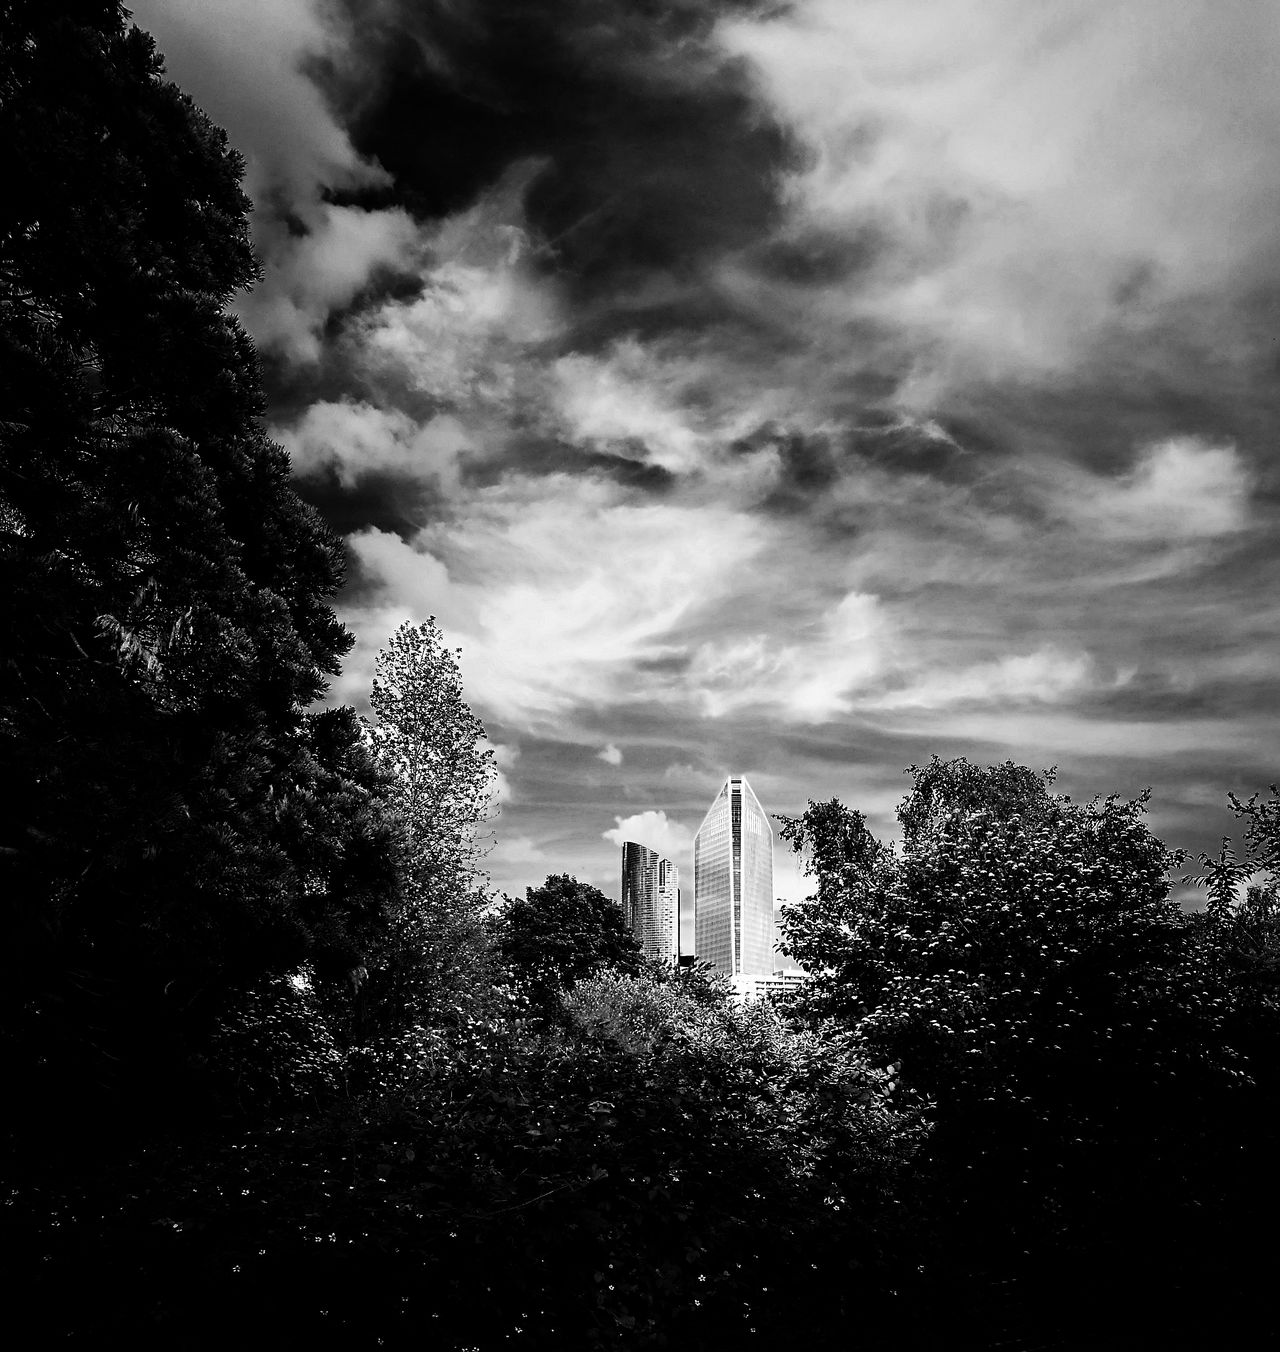 Nature Or Civilization Civilization Nature Skycrappers B&W Collection B&WPhoto B&w Photo Blackandwhite Photography Cloud - Sky Sky Grave Ombres Et Lumières Monochrome Collection Monochrome Photograhy B&w ombres Et Lumières B&W Photo Lifestyle No People Building Exterior Outdoors Hauts-de-Seine 92 France🇫🇷 HuaweiP9Photography The Street Photographer - 2017 EyeEm Awards